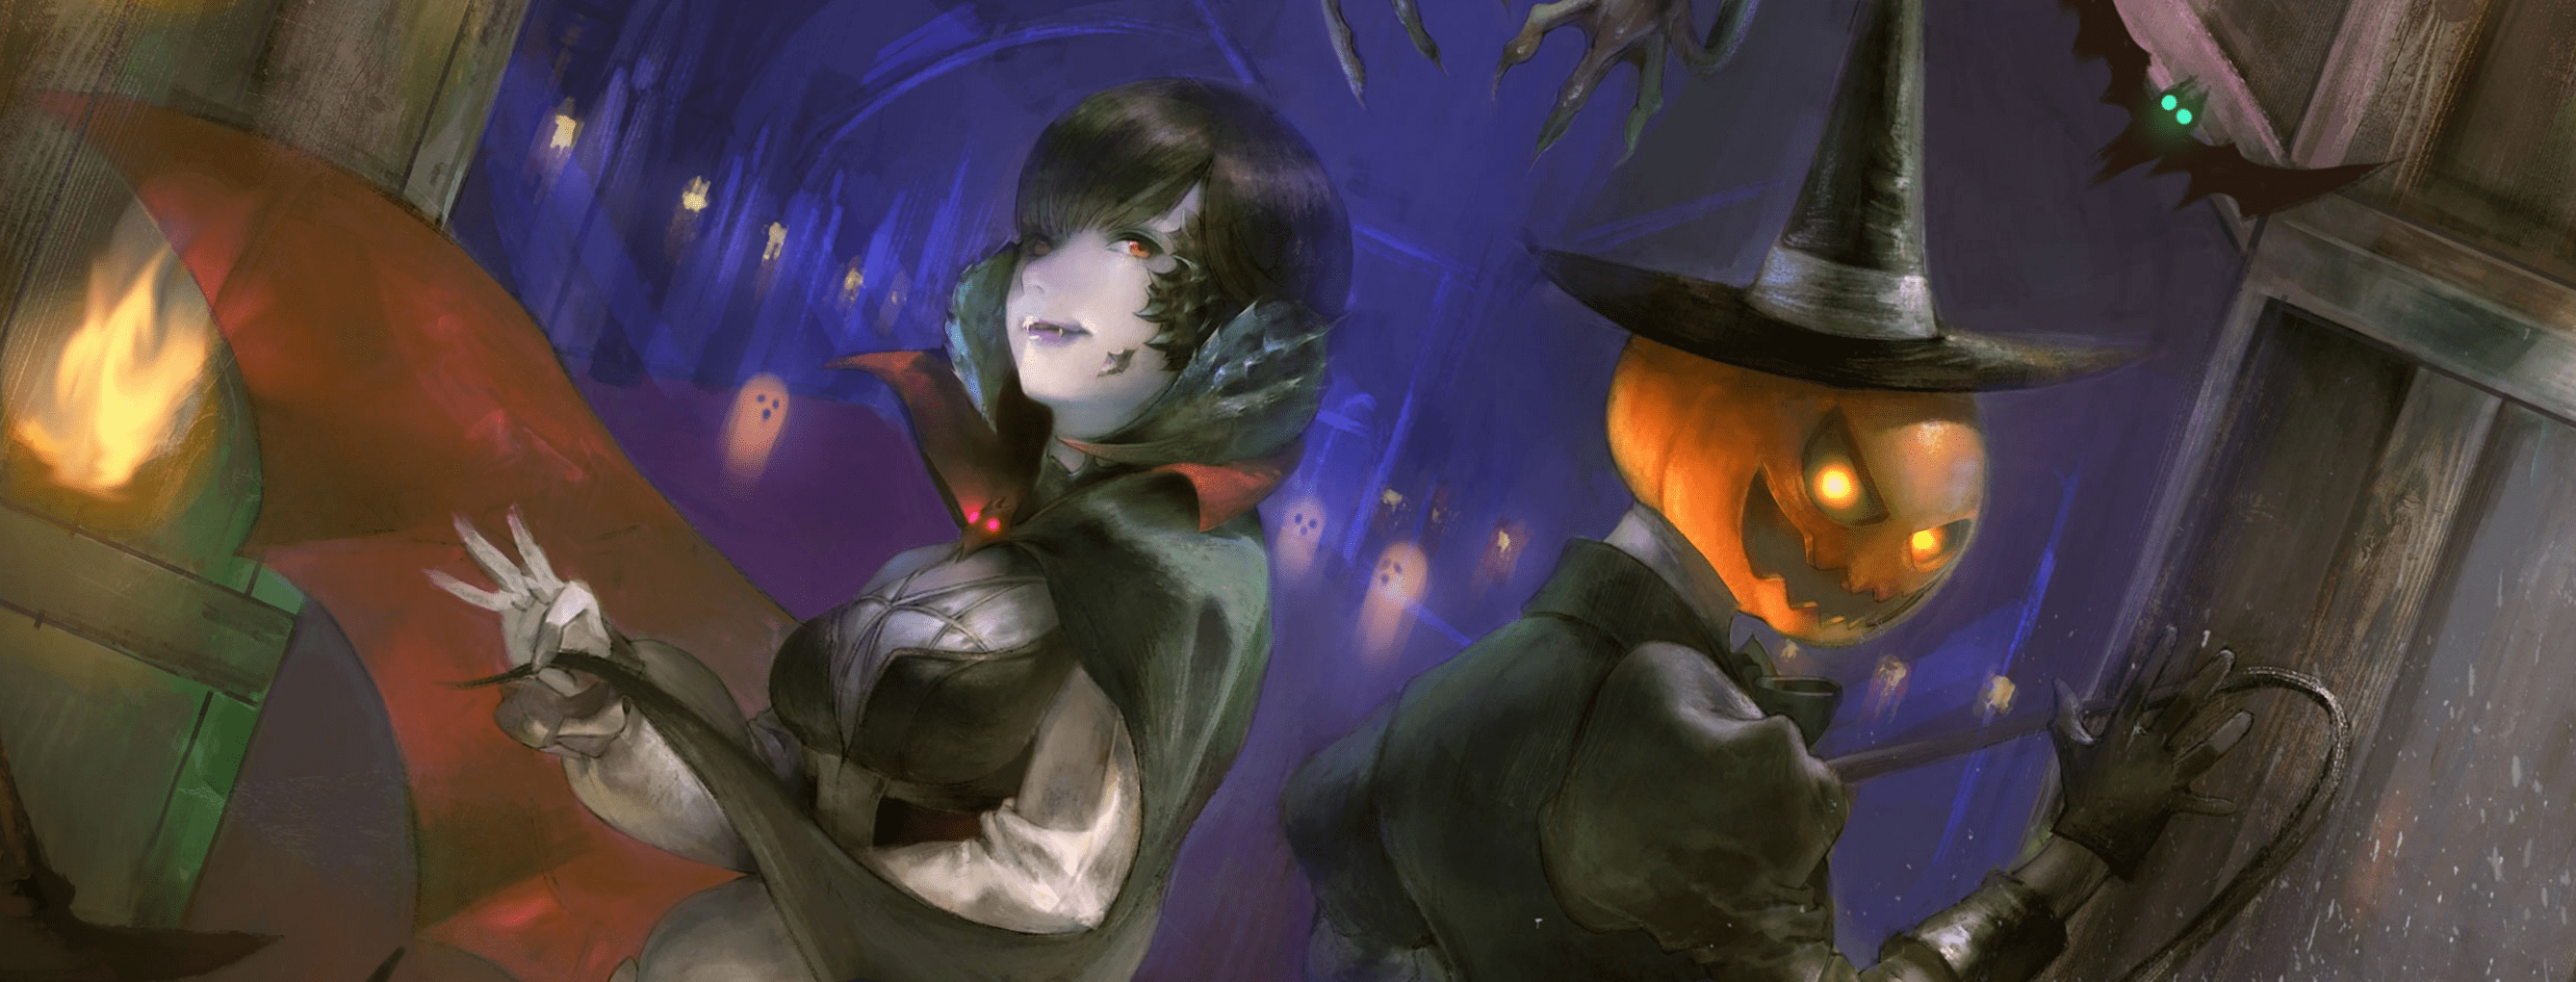 Final Fantasy 14 welcomes in the spooky